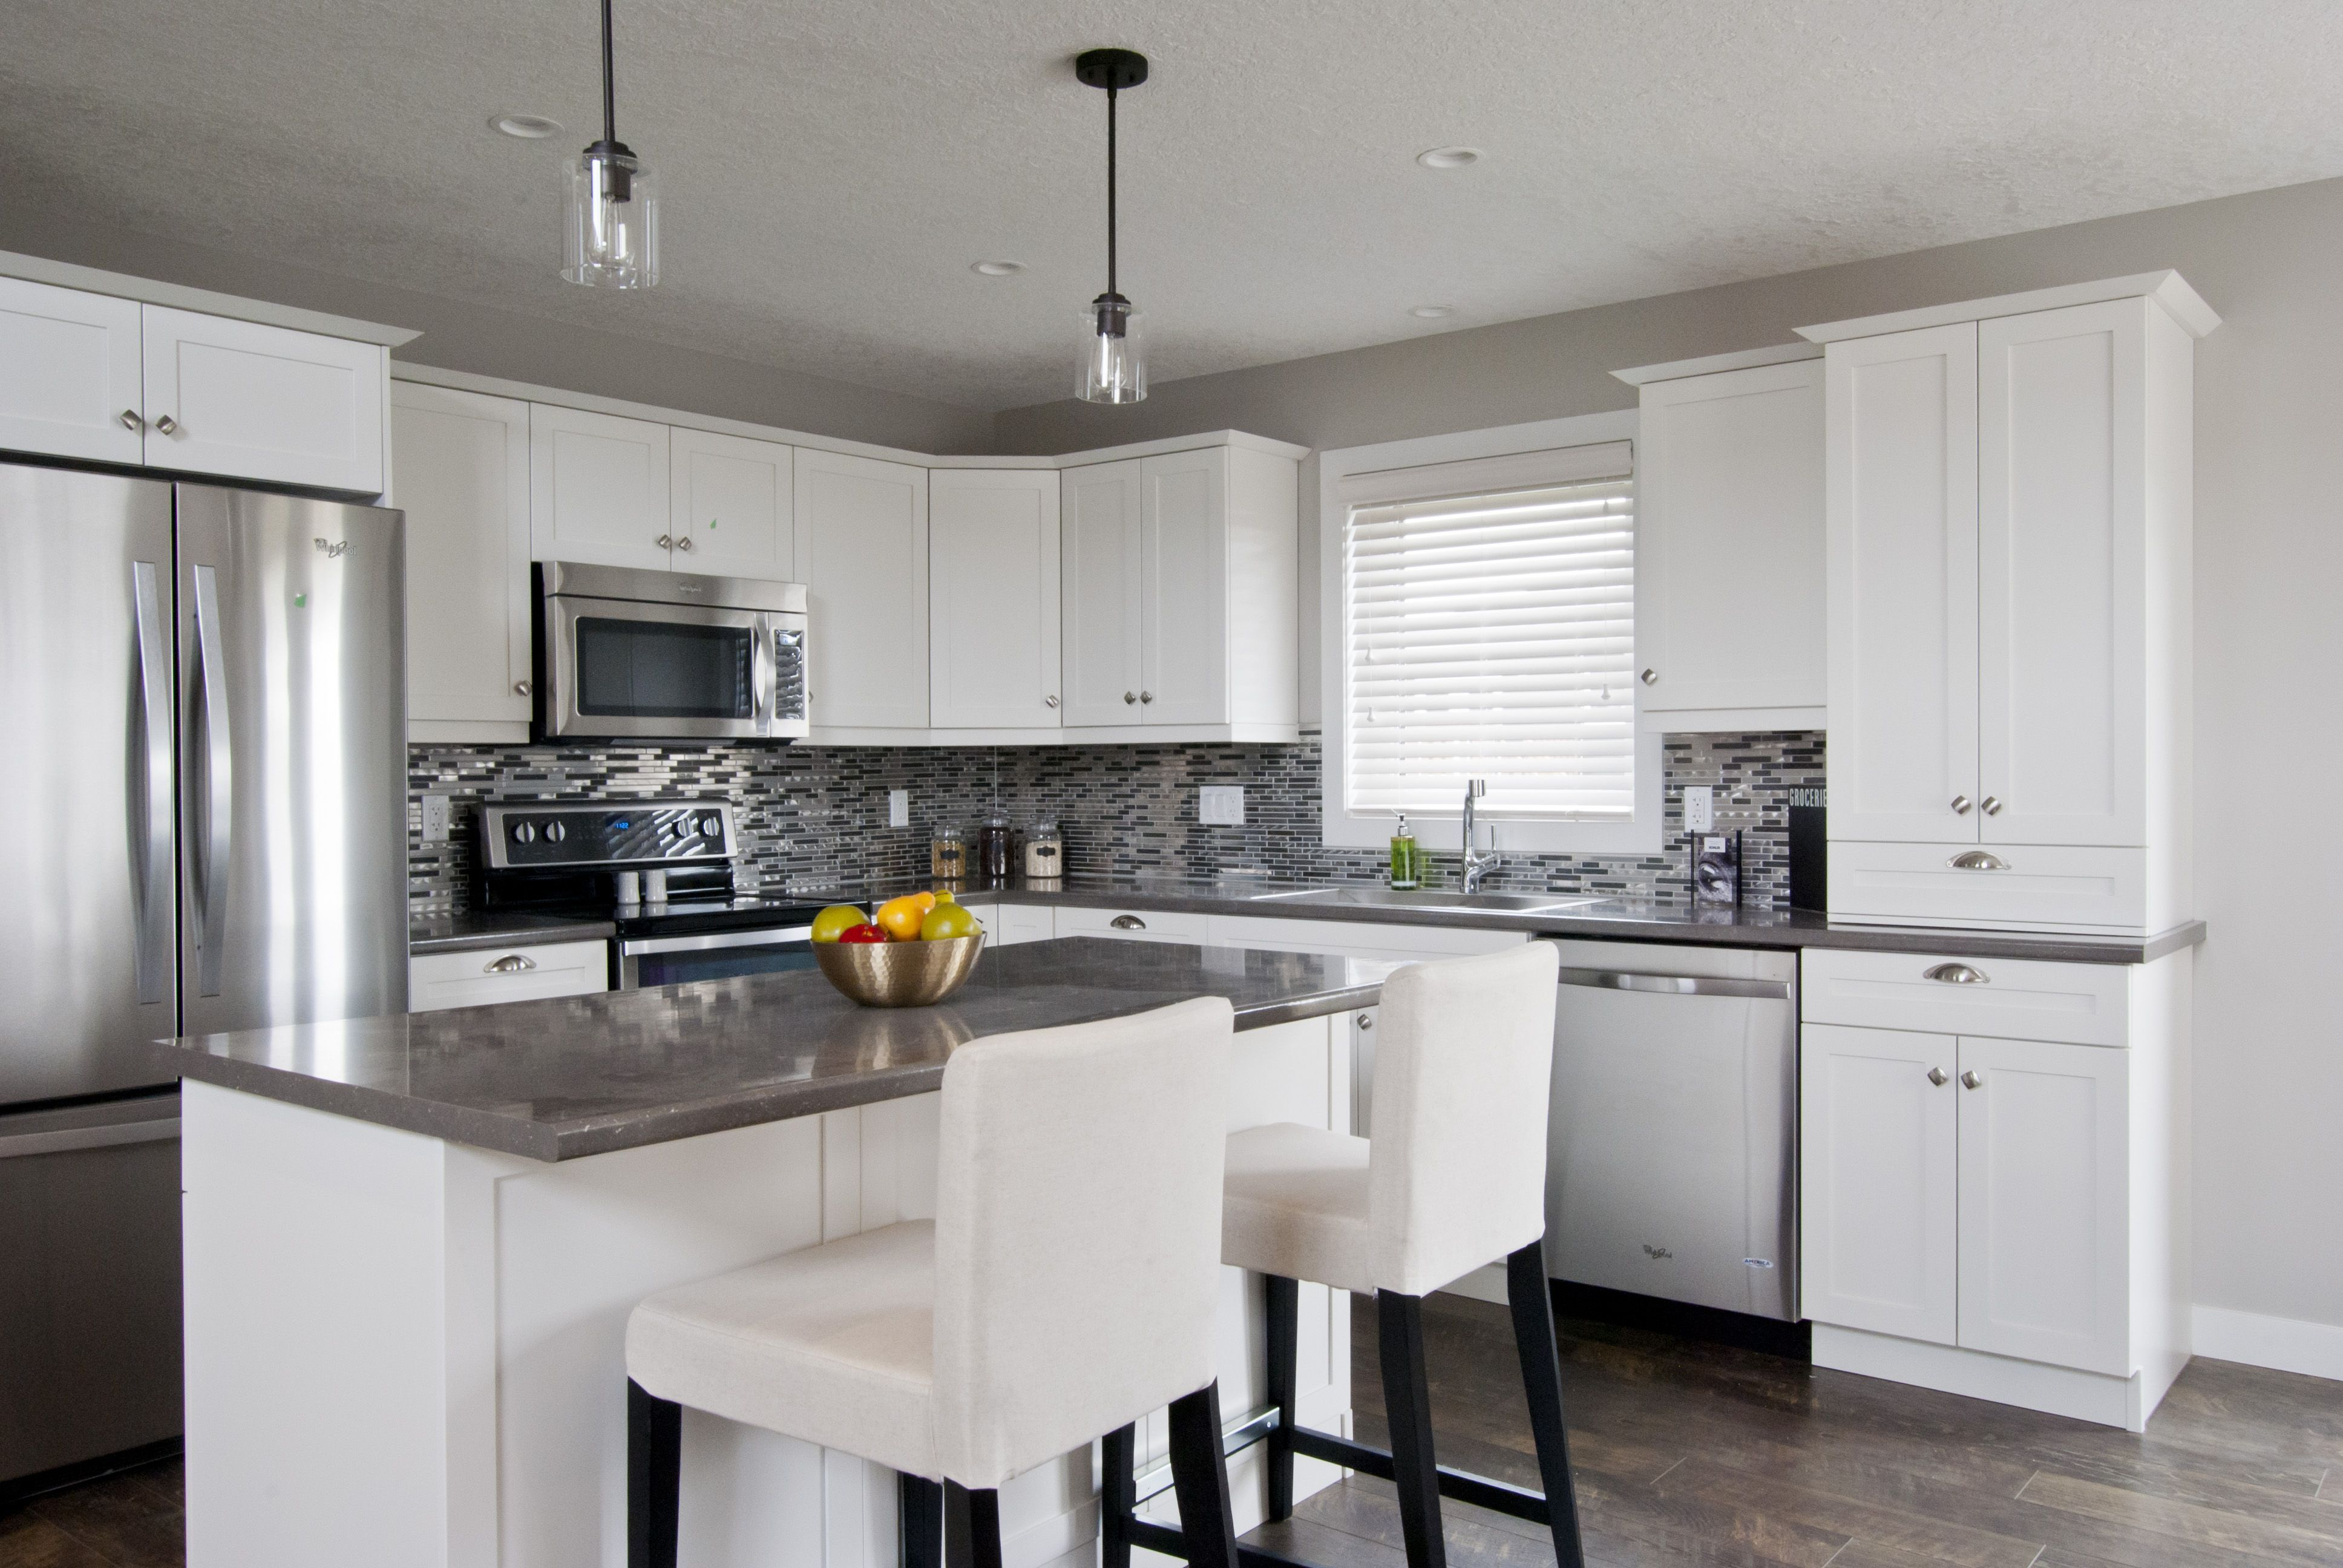 L Shaped Kitchen With Island Kitchen Remodel Small Kitchen Layout Kitchen Designs Layout